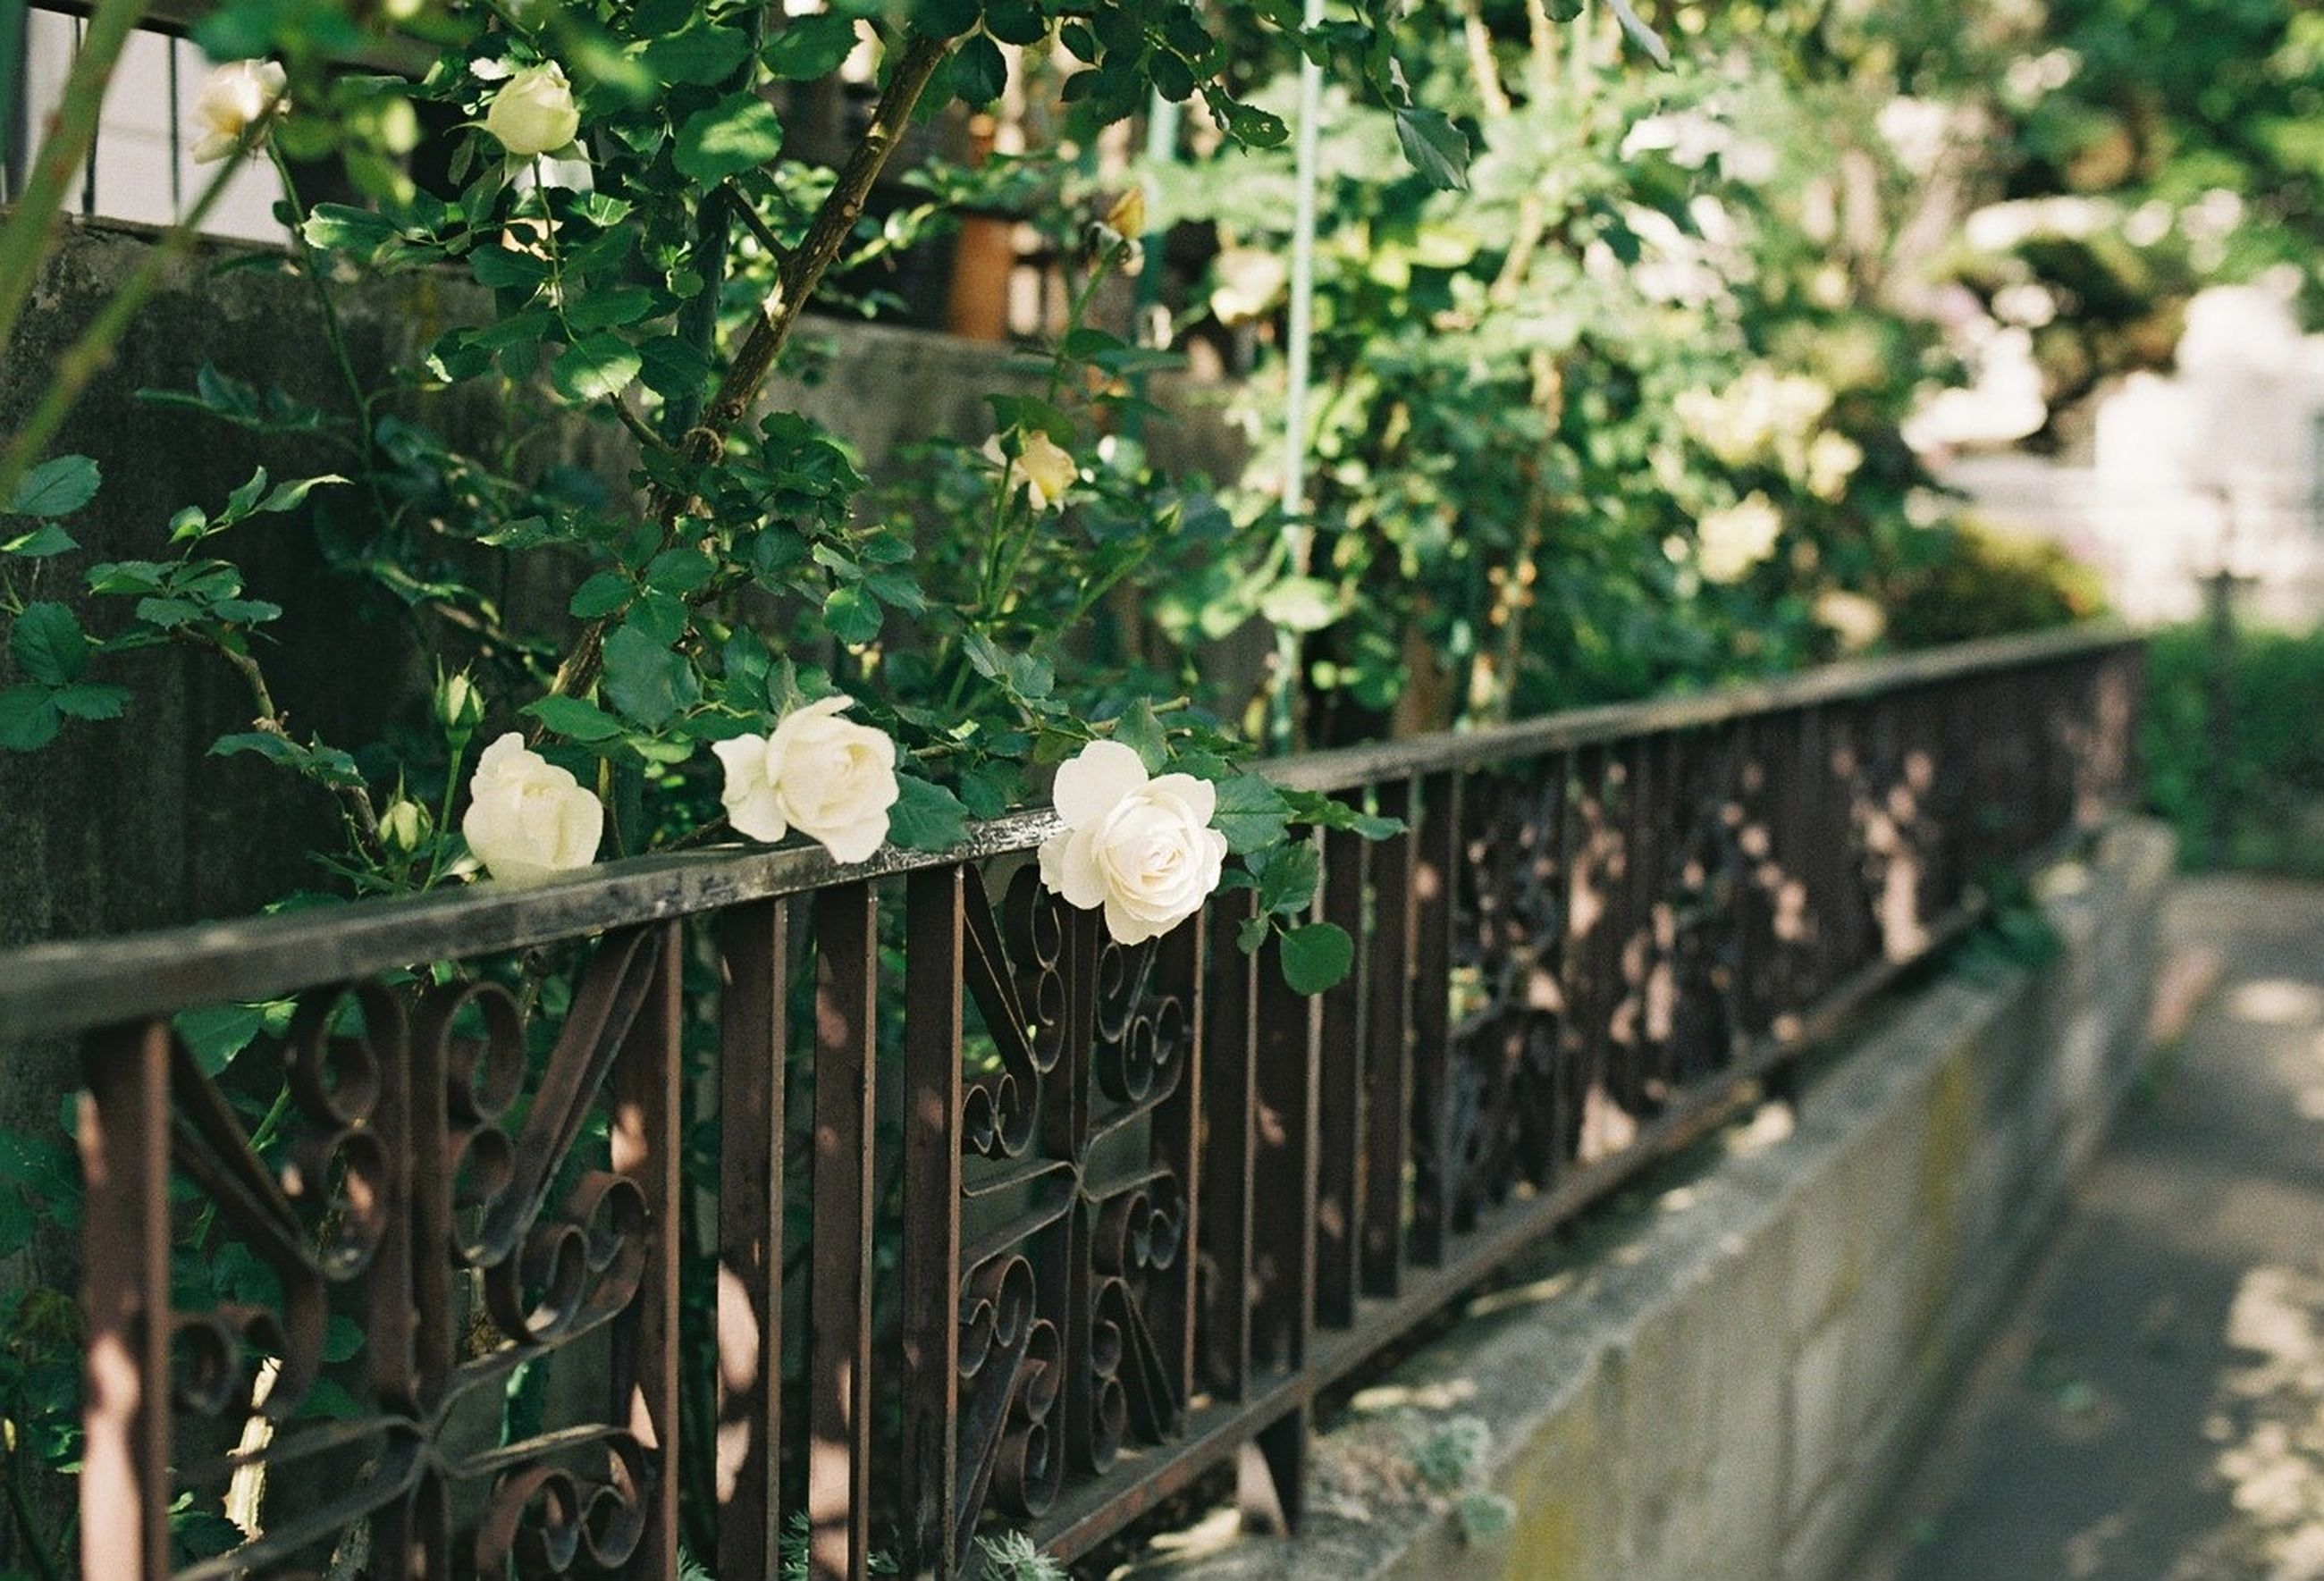 flower, growth, plant, freshness, fragility, fence, nature, white color, leaf, built structure, railing, day, petal, architecture, beauty in nature, close-up, no people, outdoors, blooming, front or back yard